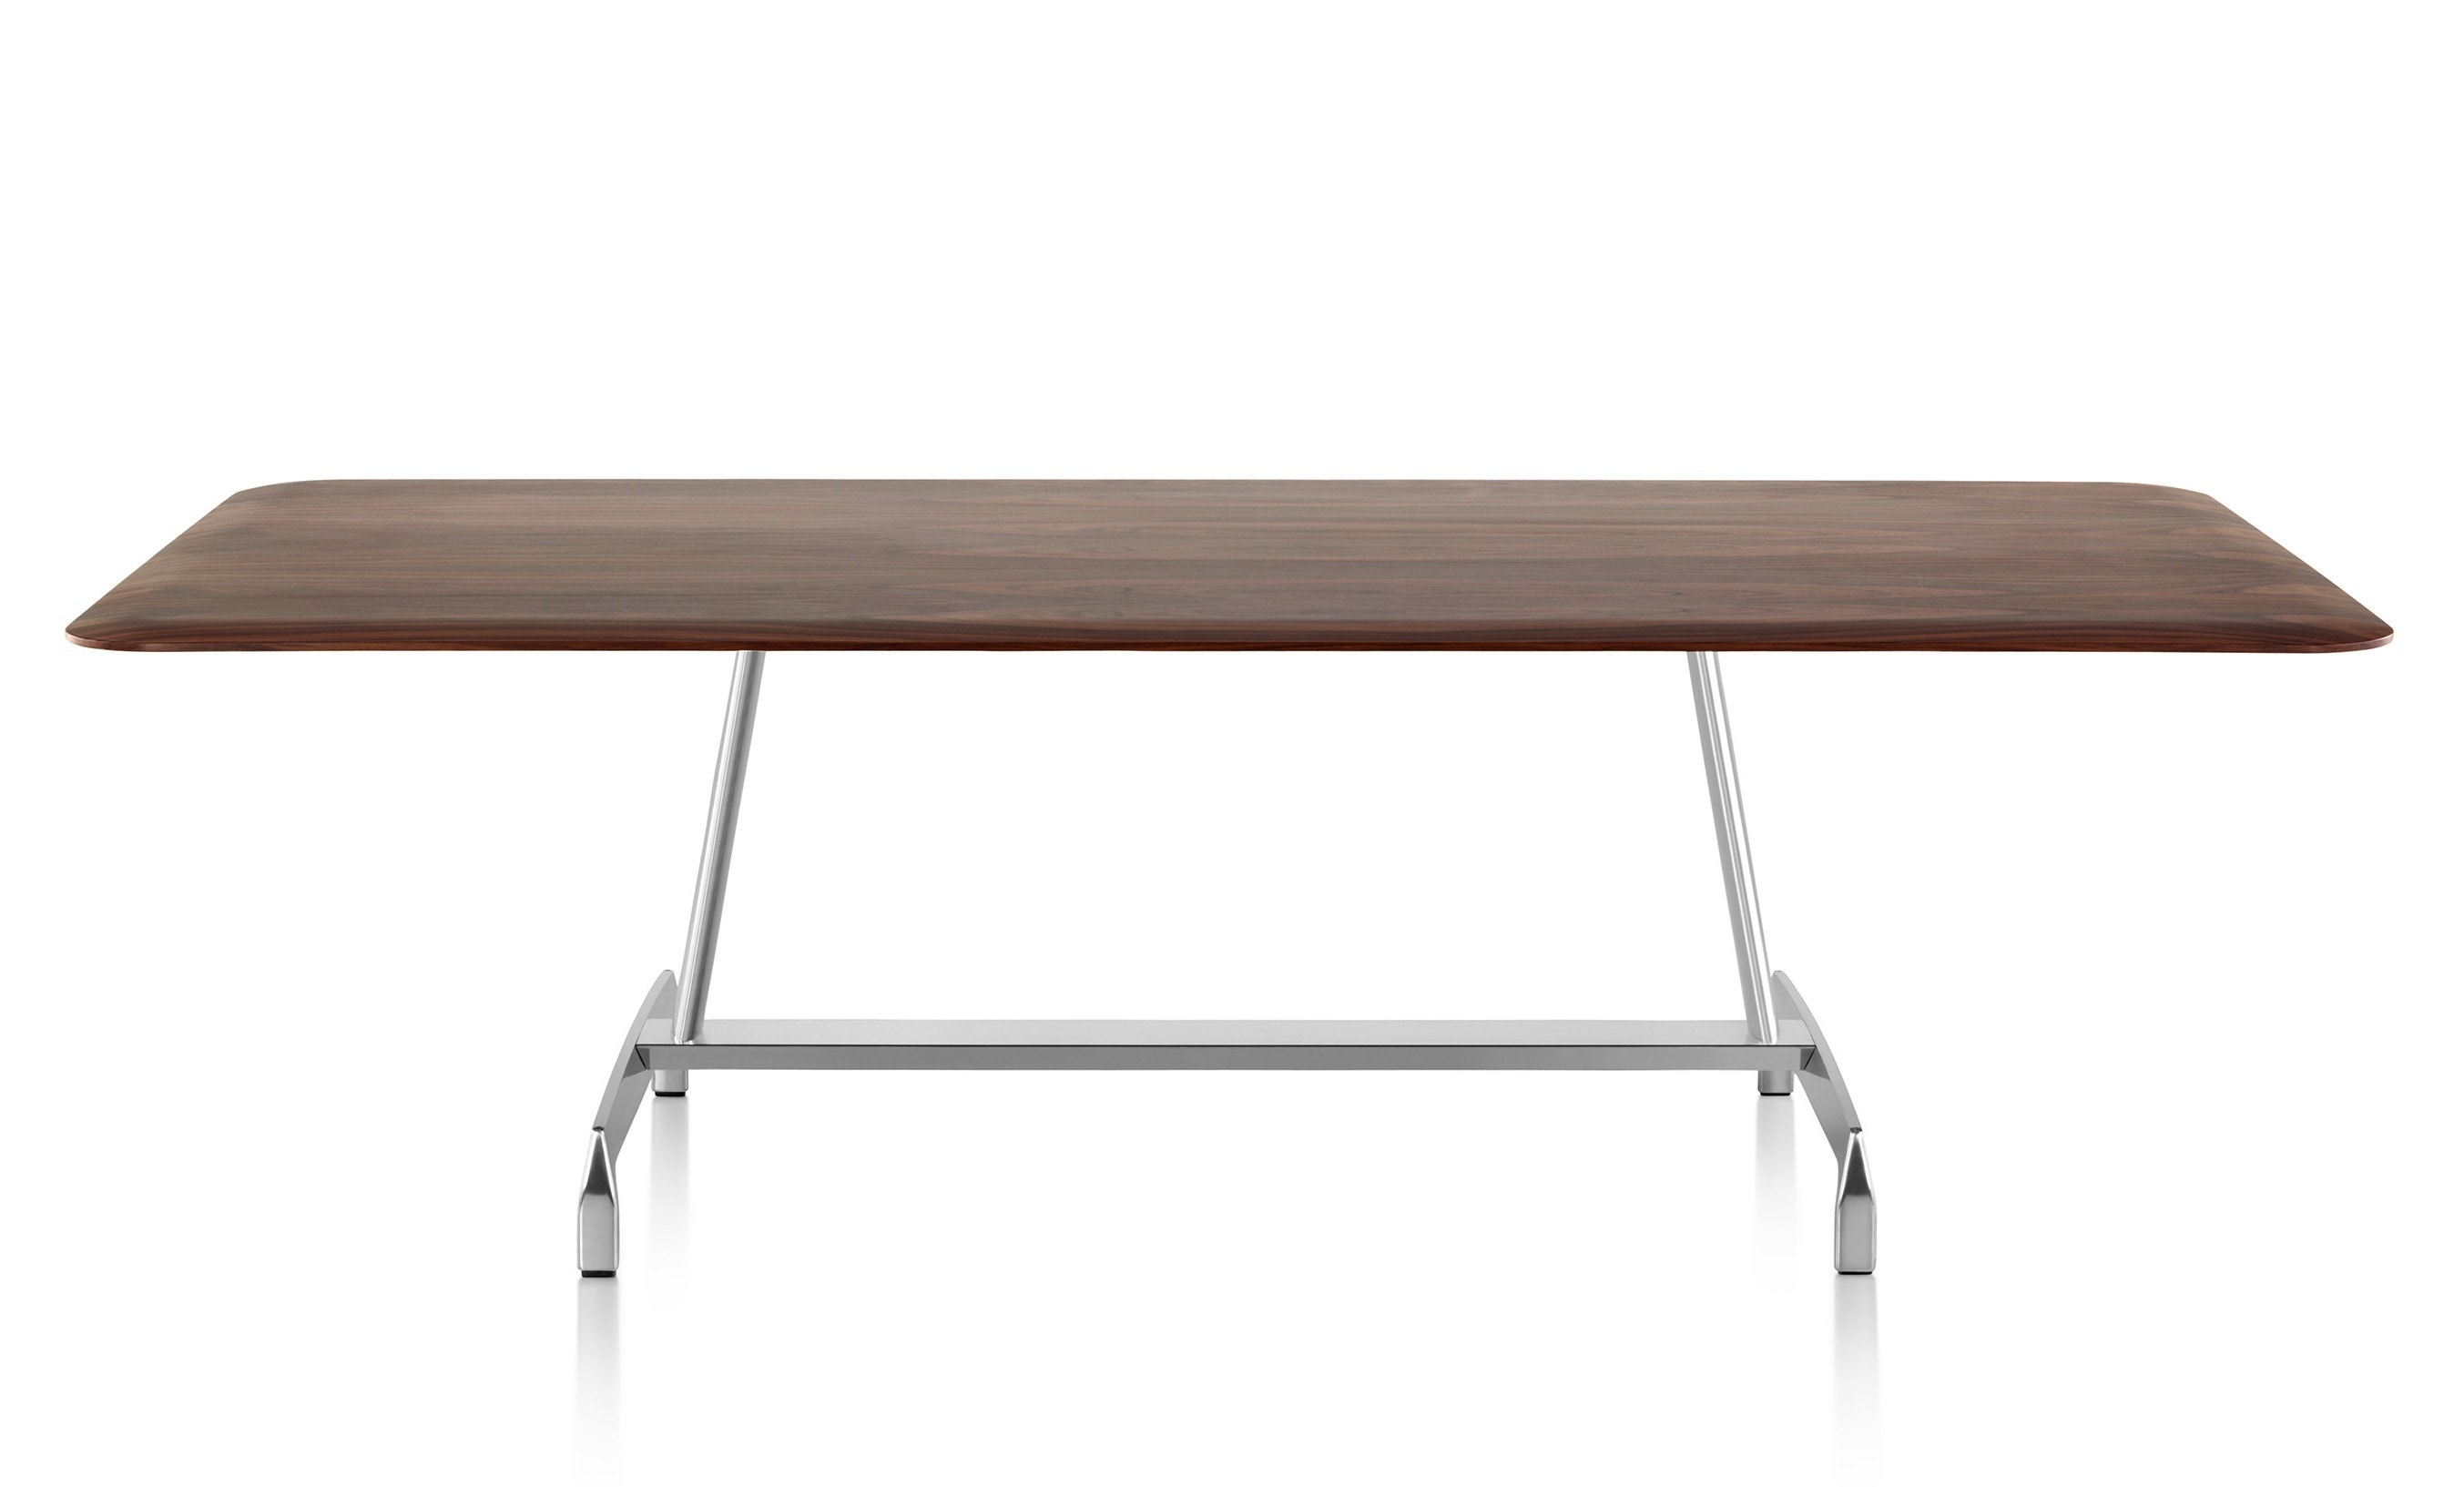 Tables Herman Miller Shop by Brand GR Shop Canada